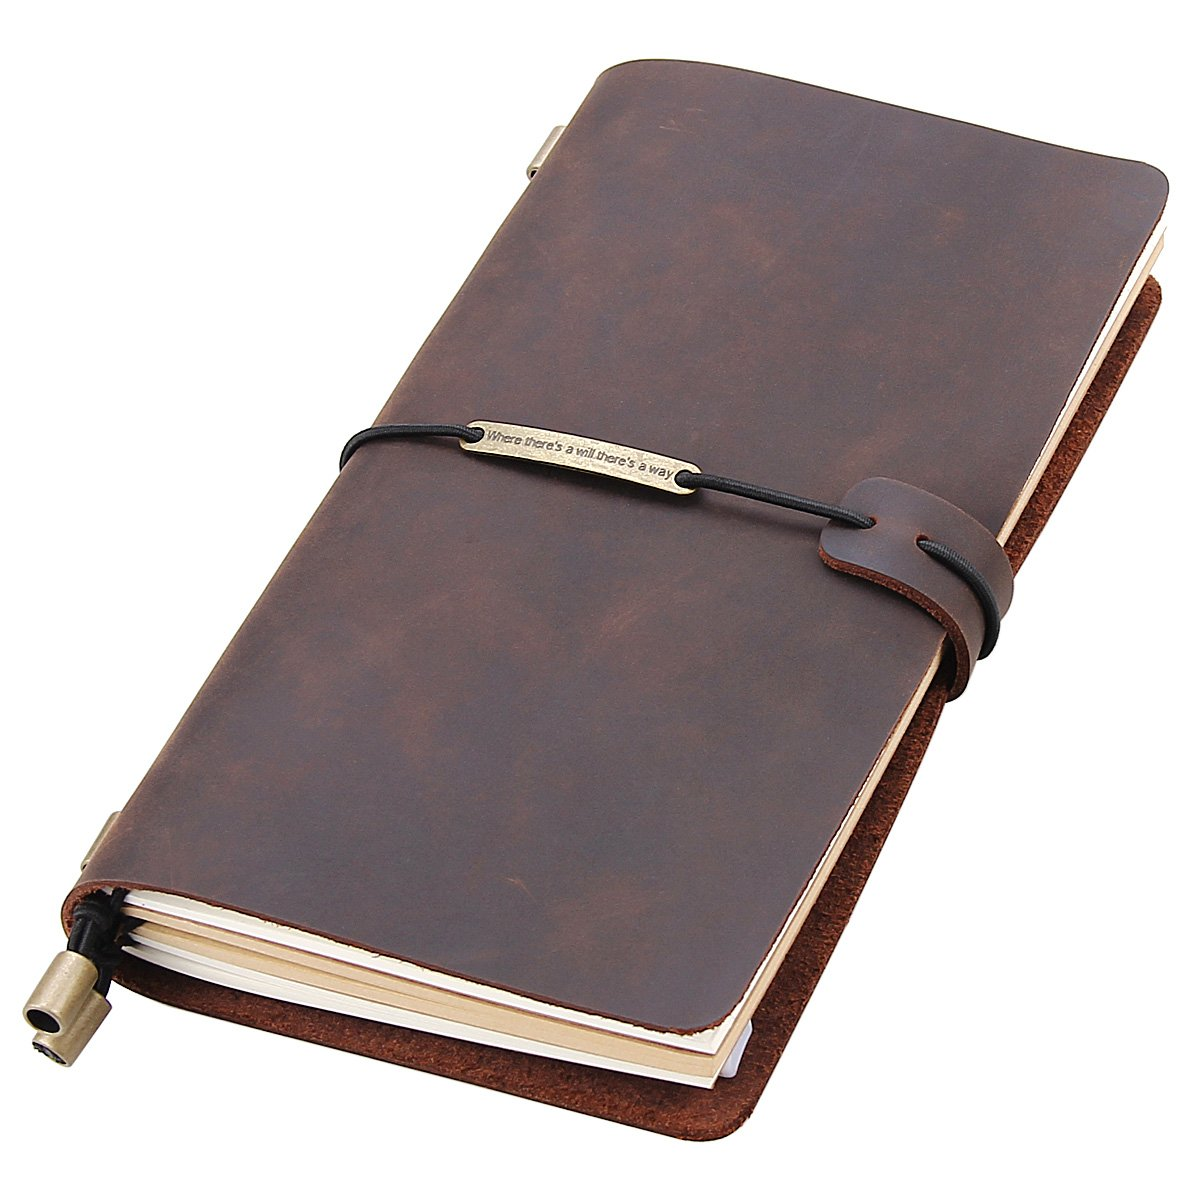 Leather Writing Journal Notebook Refillable, Handmade Traveler's Notebook for Men & Women, Perfect for Writing, Gifts, Travelers, Standard Size 8.5'' x 4.5'' Inches - Coffee